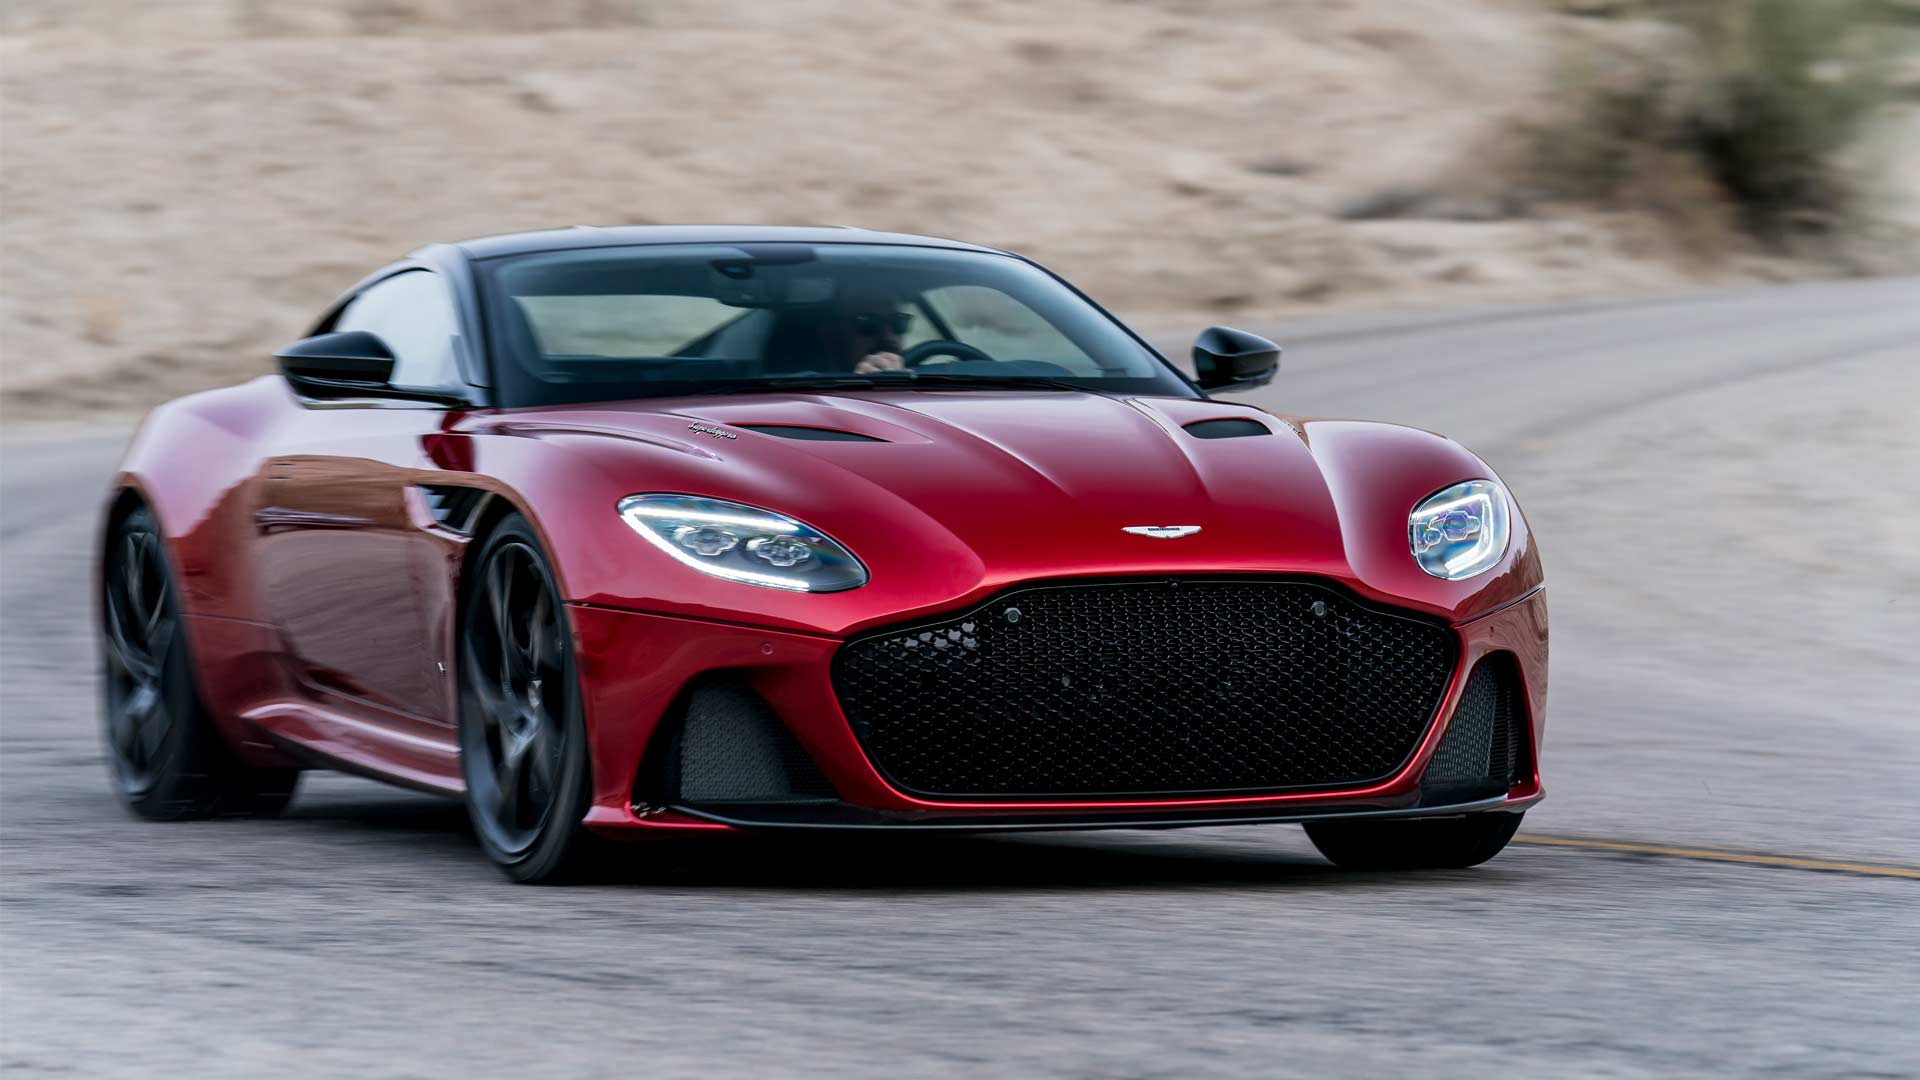 2018-Aston-Martin-DBS-Superleggera_4